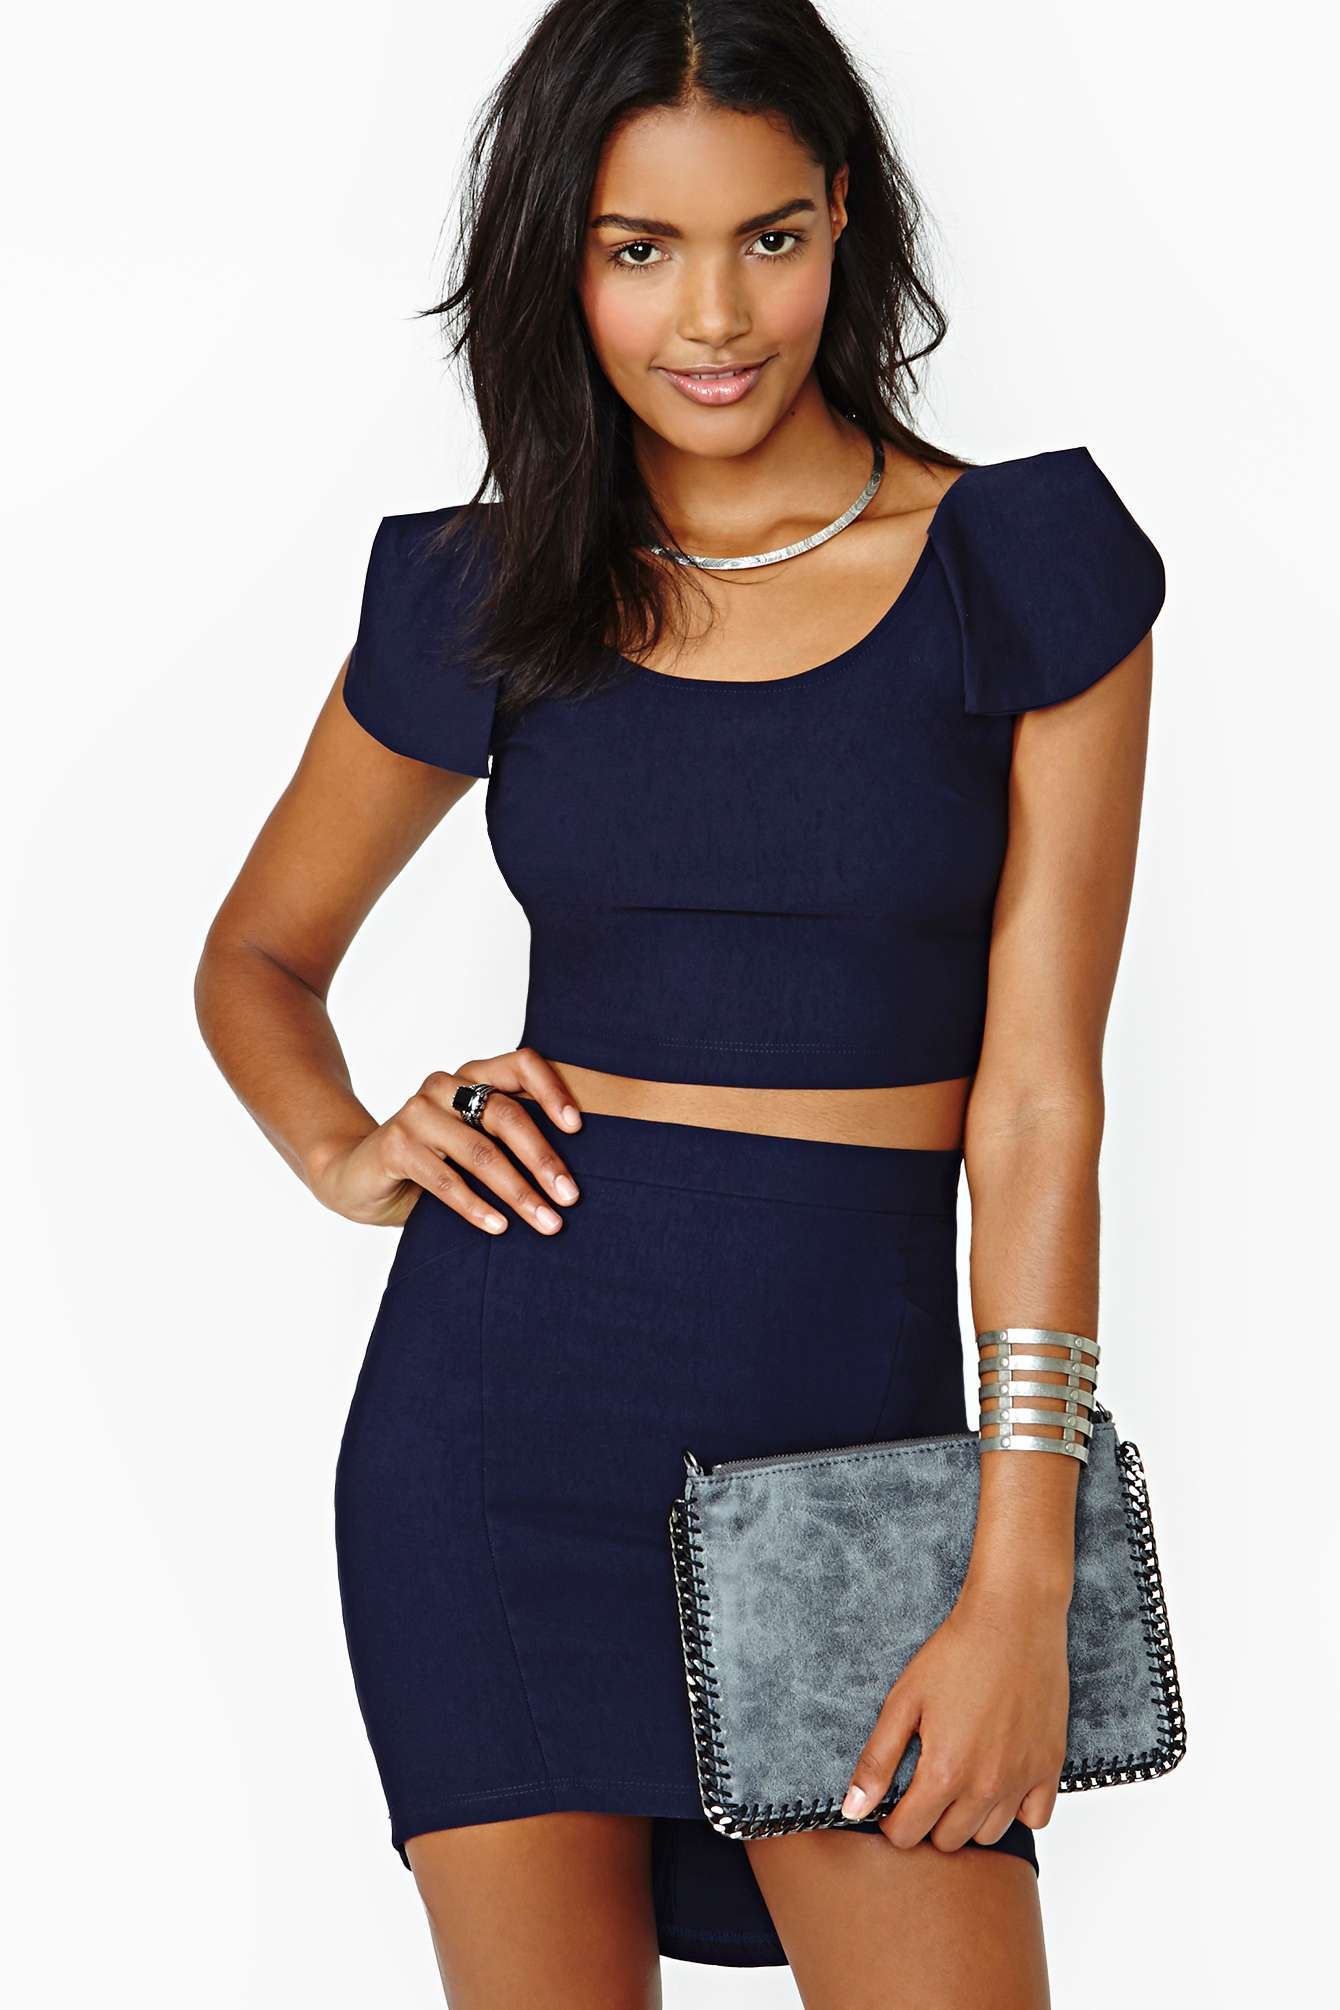 The Free People Solid Rib Navy Blue Cropped Tank Top loves to be styled simply or layered luxuriously! Super-stretchy, lightweight ribbed knit forms this essential tank top with a V-neck, wide straps, and a /5(62).